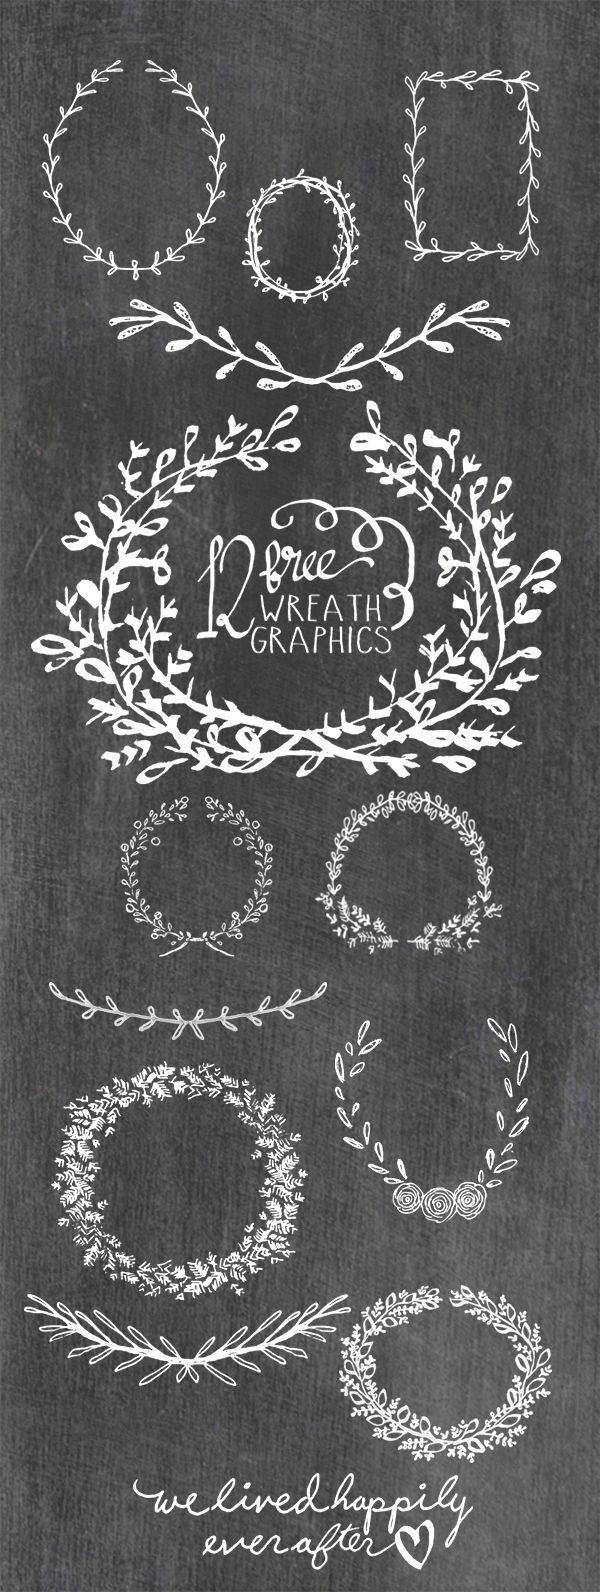 12 Free Wreath Graphics